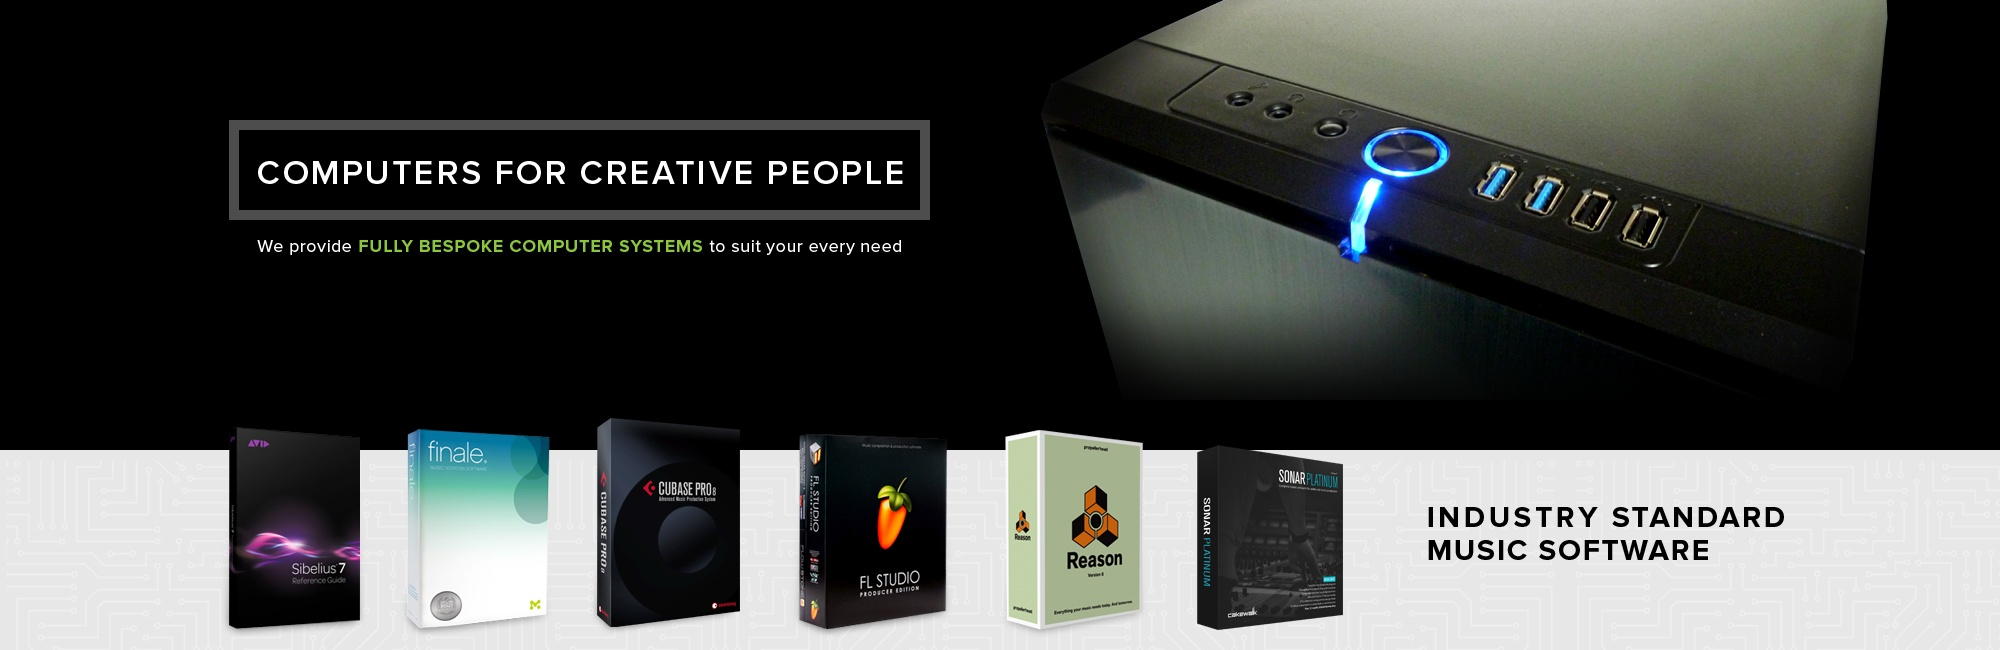 Computers for Creative People